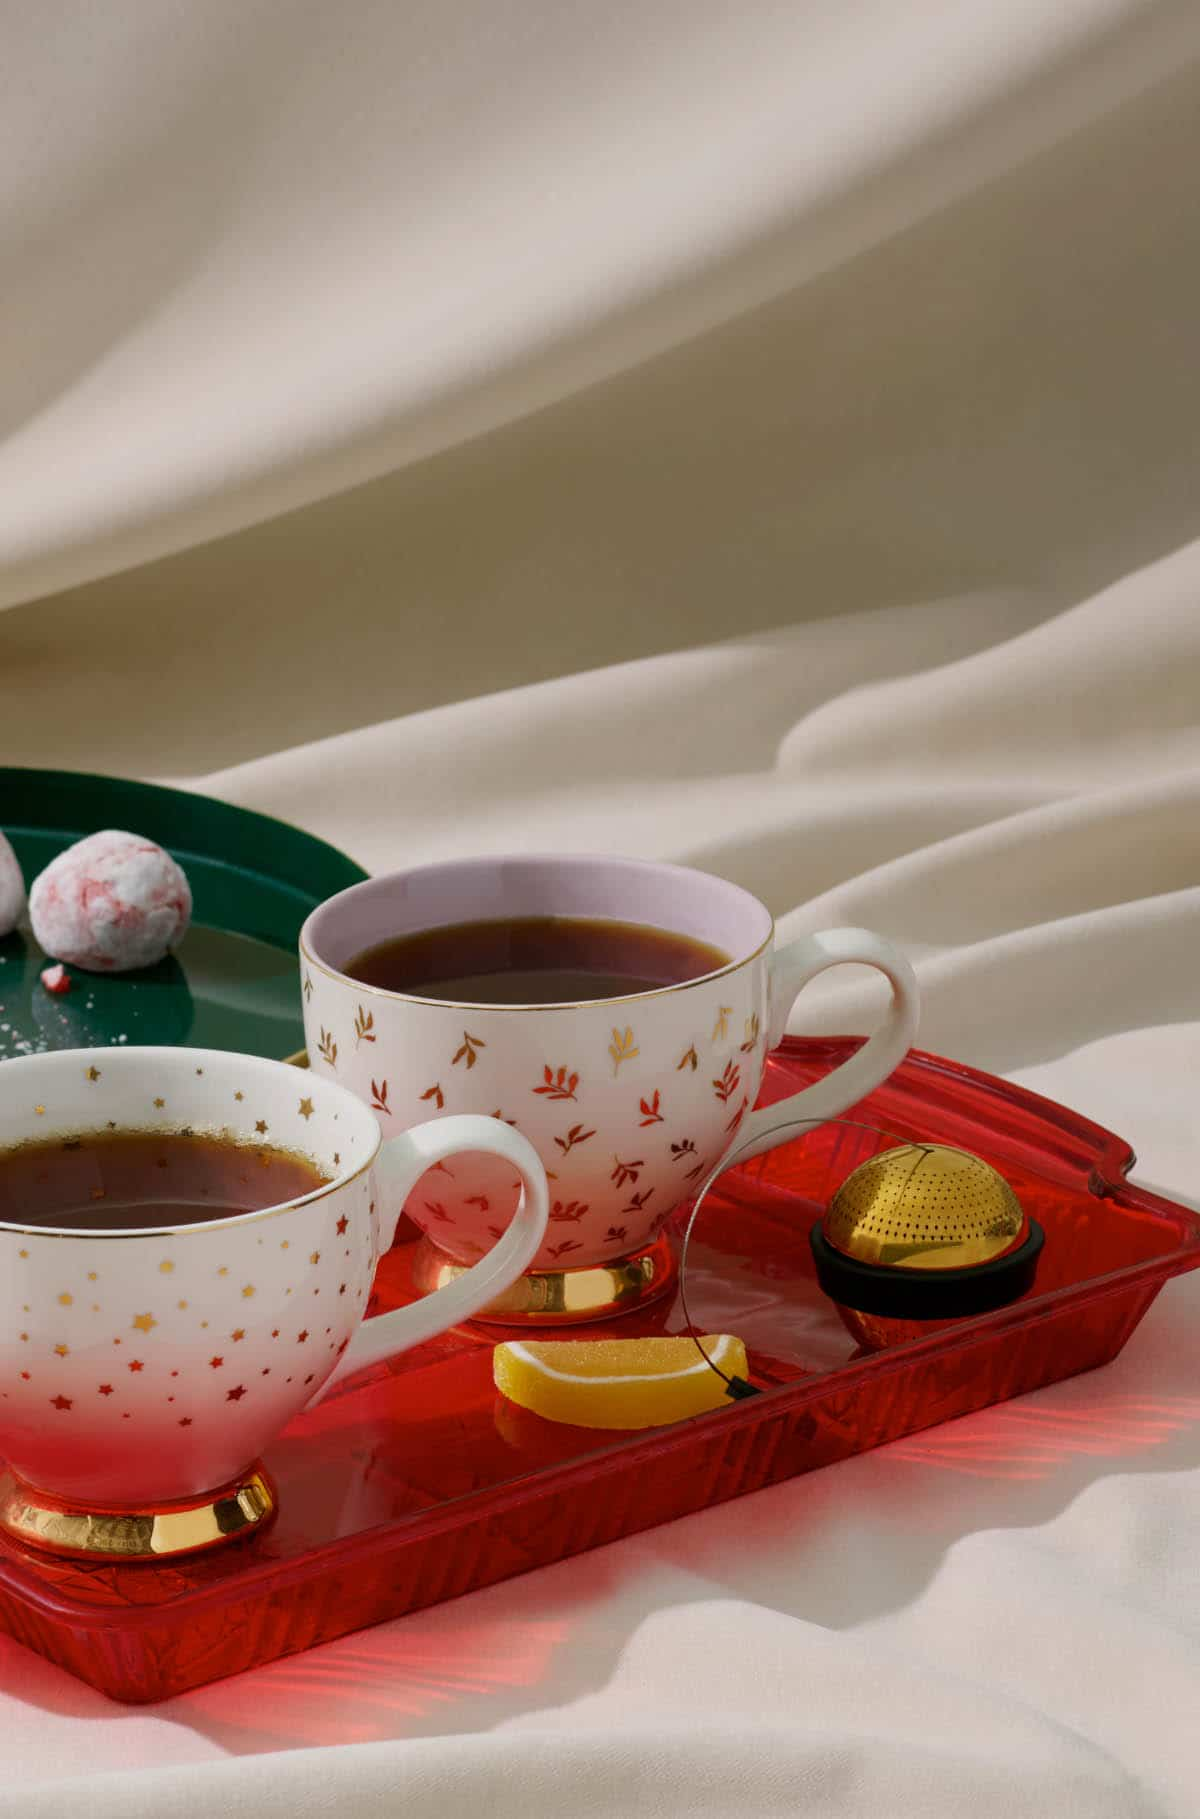 Two jolly teacup placed next to each other with a gold mesh ball and various sweet snacks next to them.